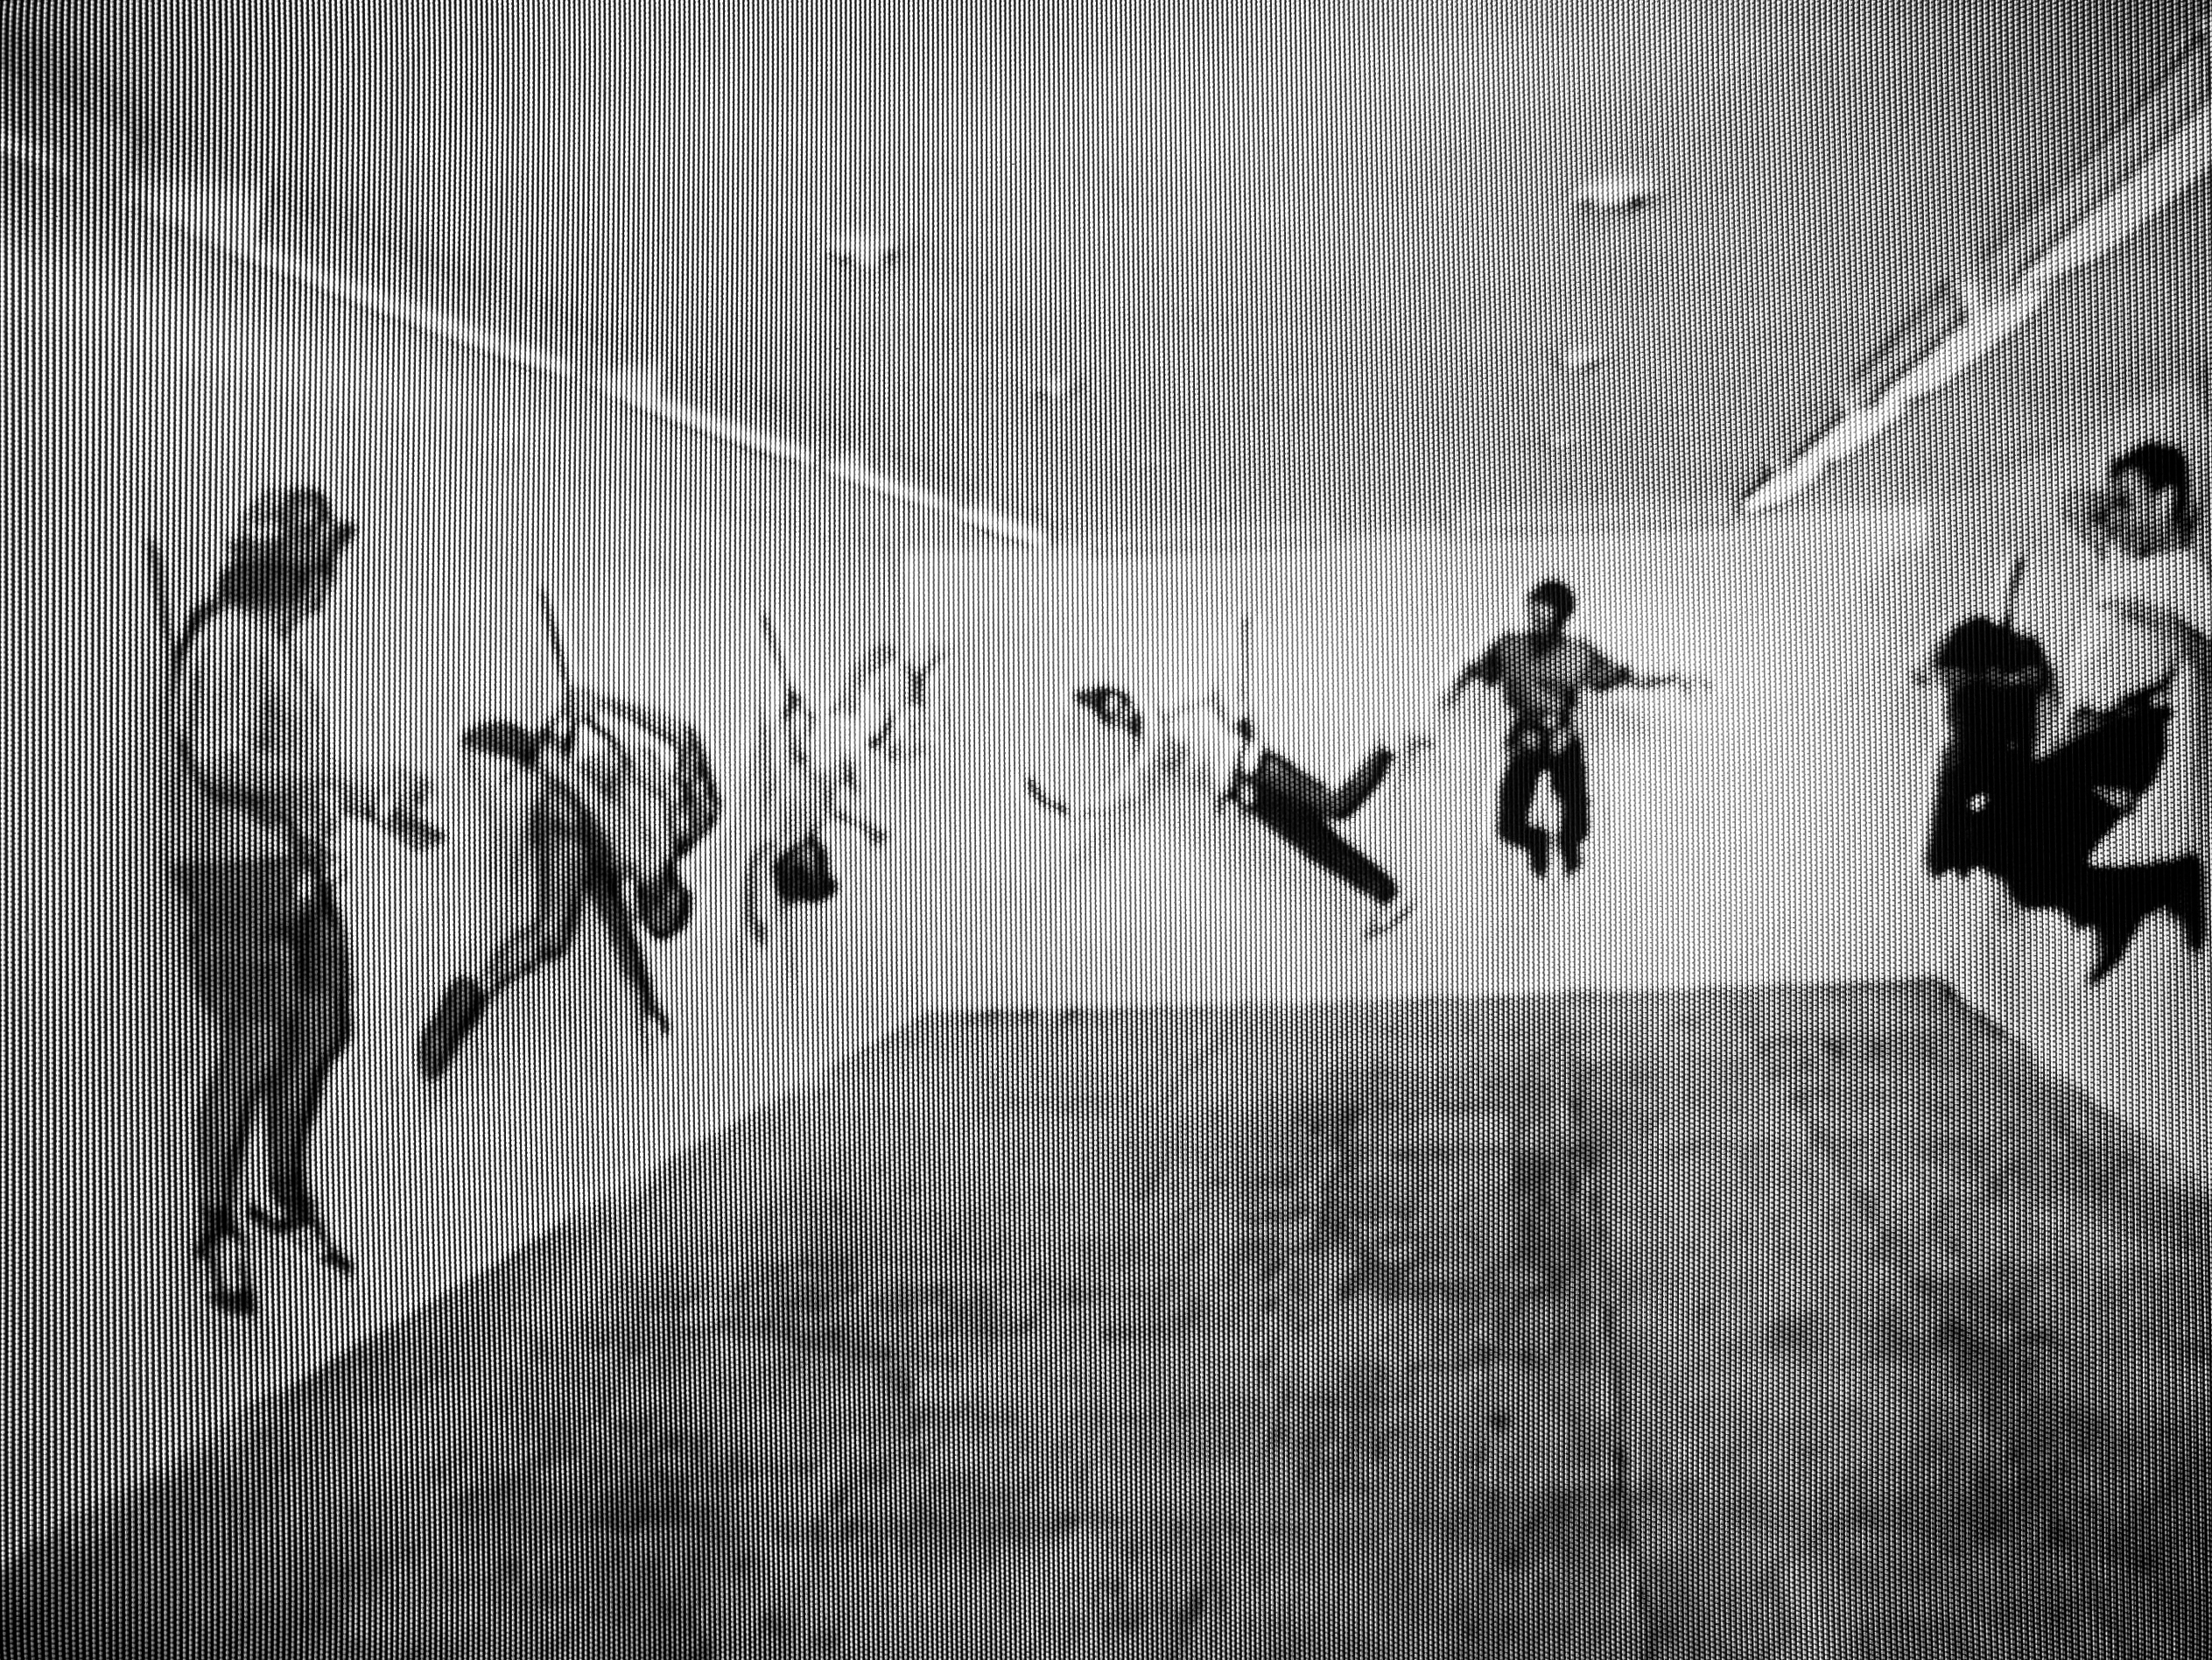 Raul Mourao 7 artists, 1995, digital video, black and white, sound,1' (still da video)